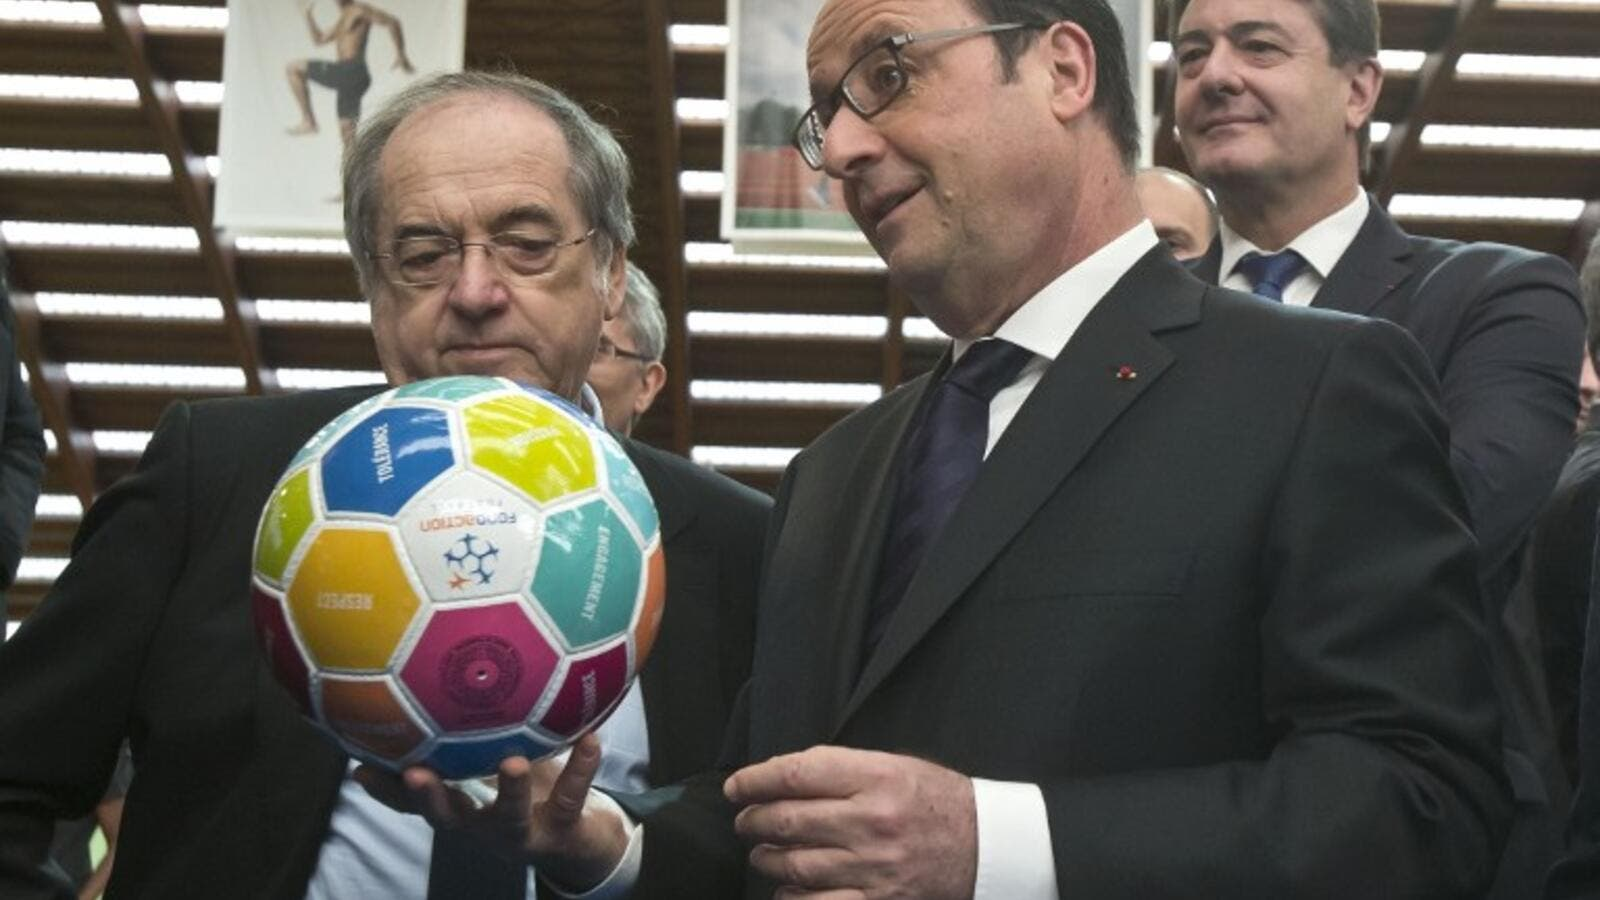 Hollande pointed to June's European football championship as proof that France could handle a big event